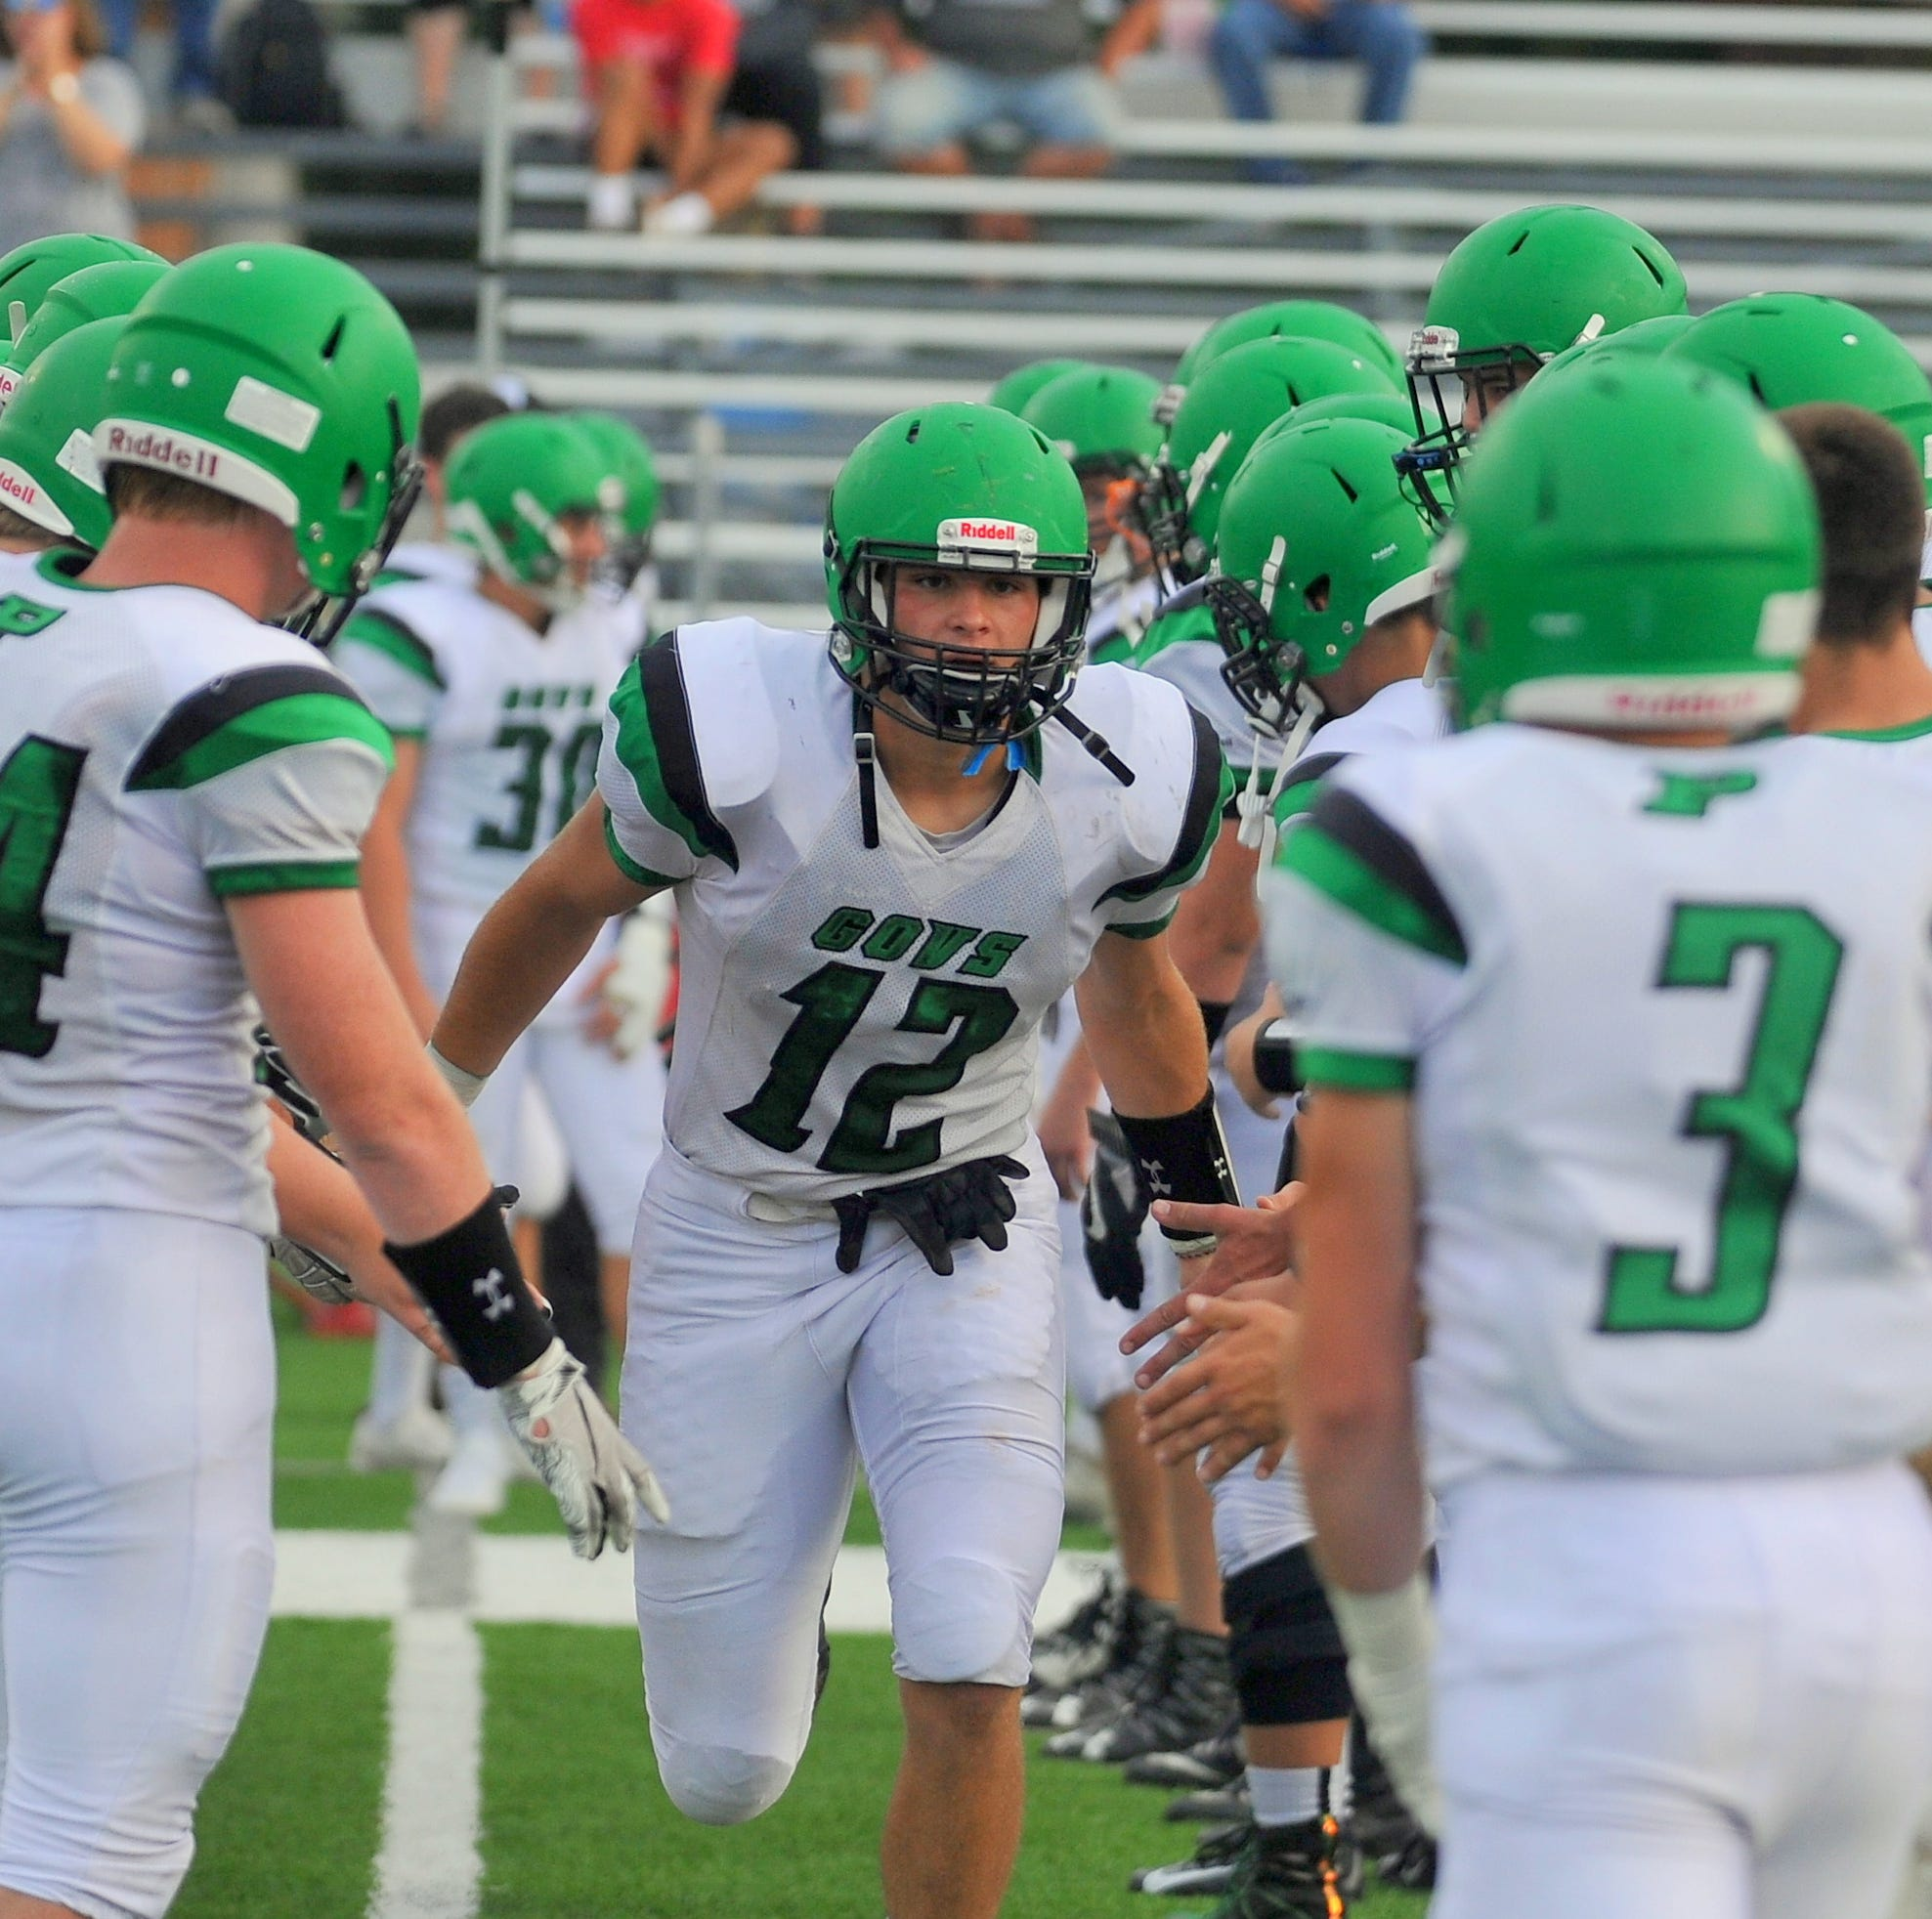 South Dakota High School Football Media Poll: Pierre Governors rise to No. 1 in 11AA